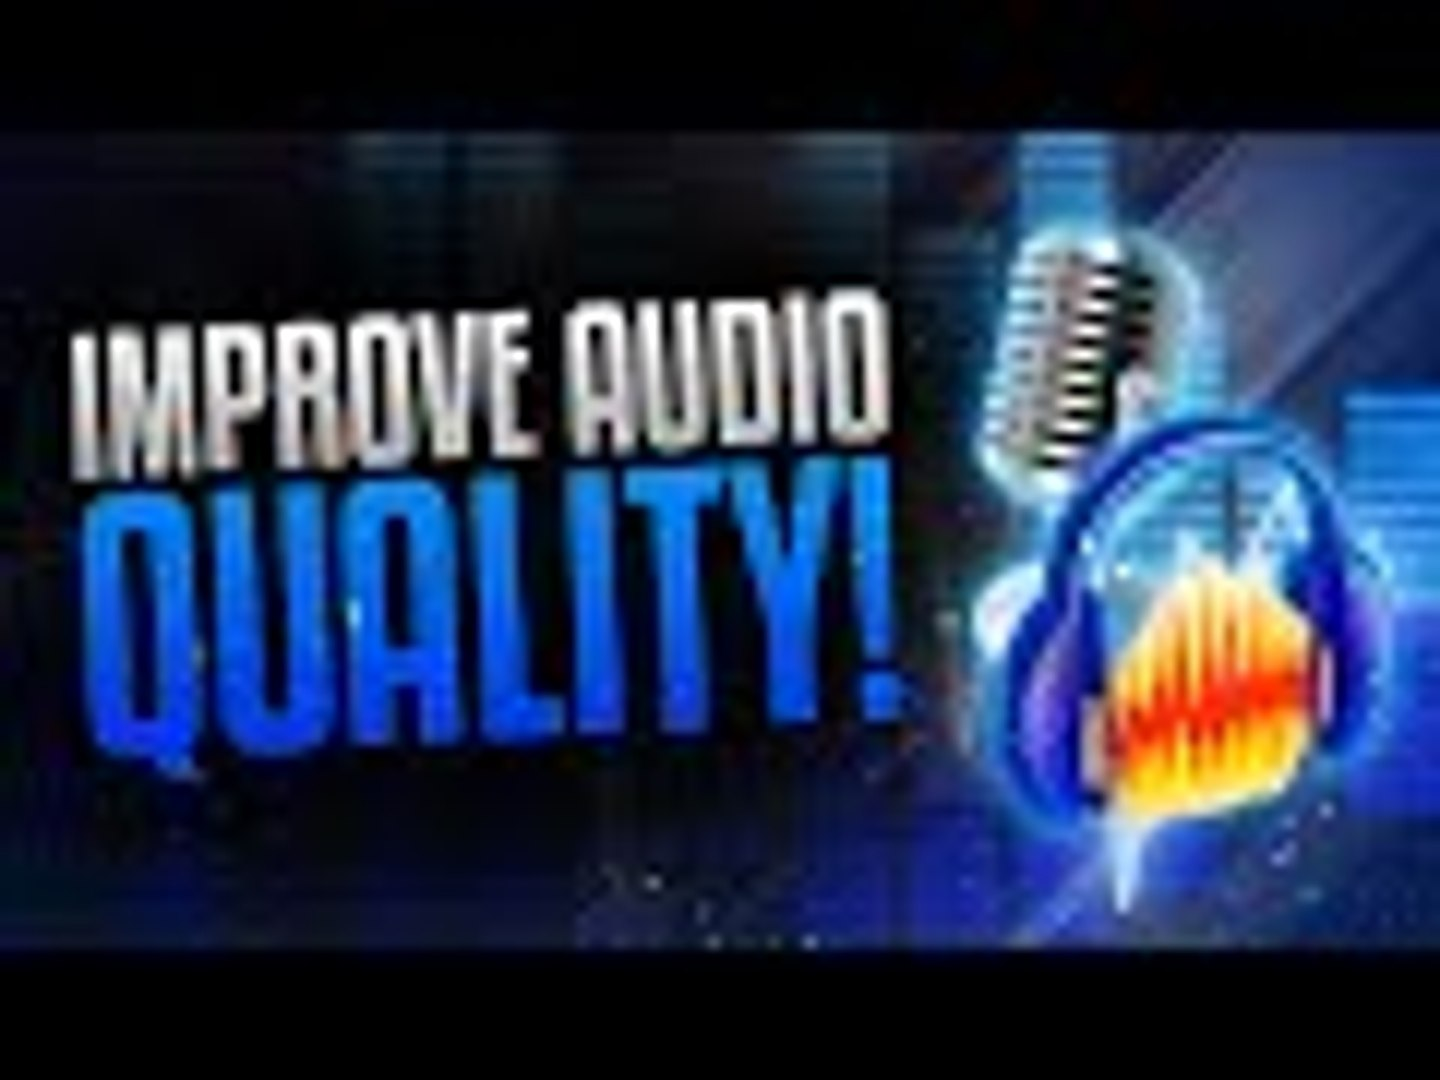 How to Make Your Voice/Audio Sound Better! Audacity Background Noise  Removal Tutorial! (2015/2016)